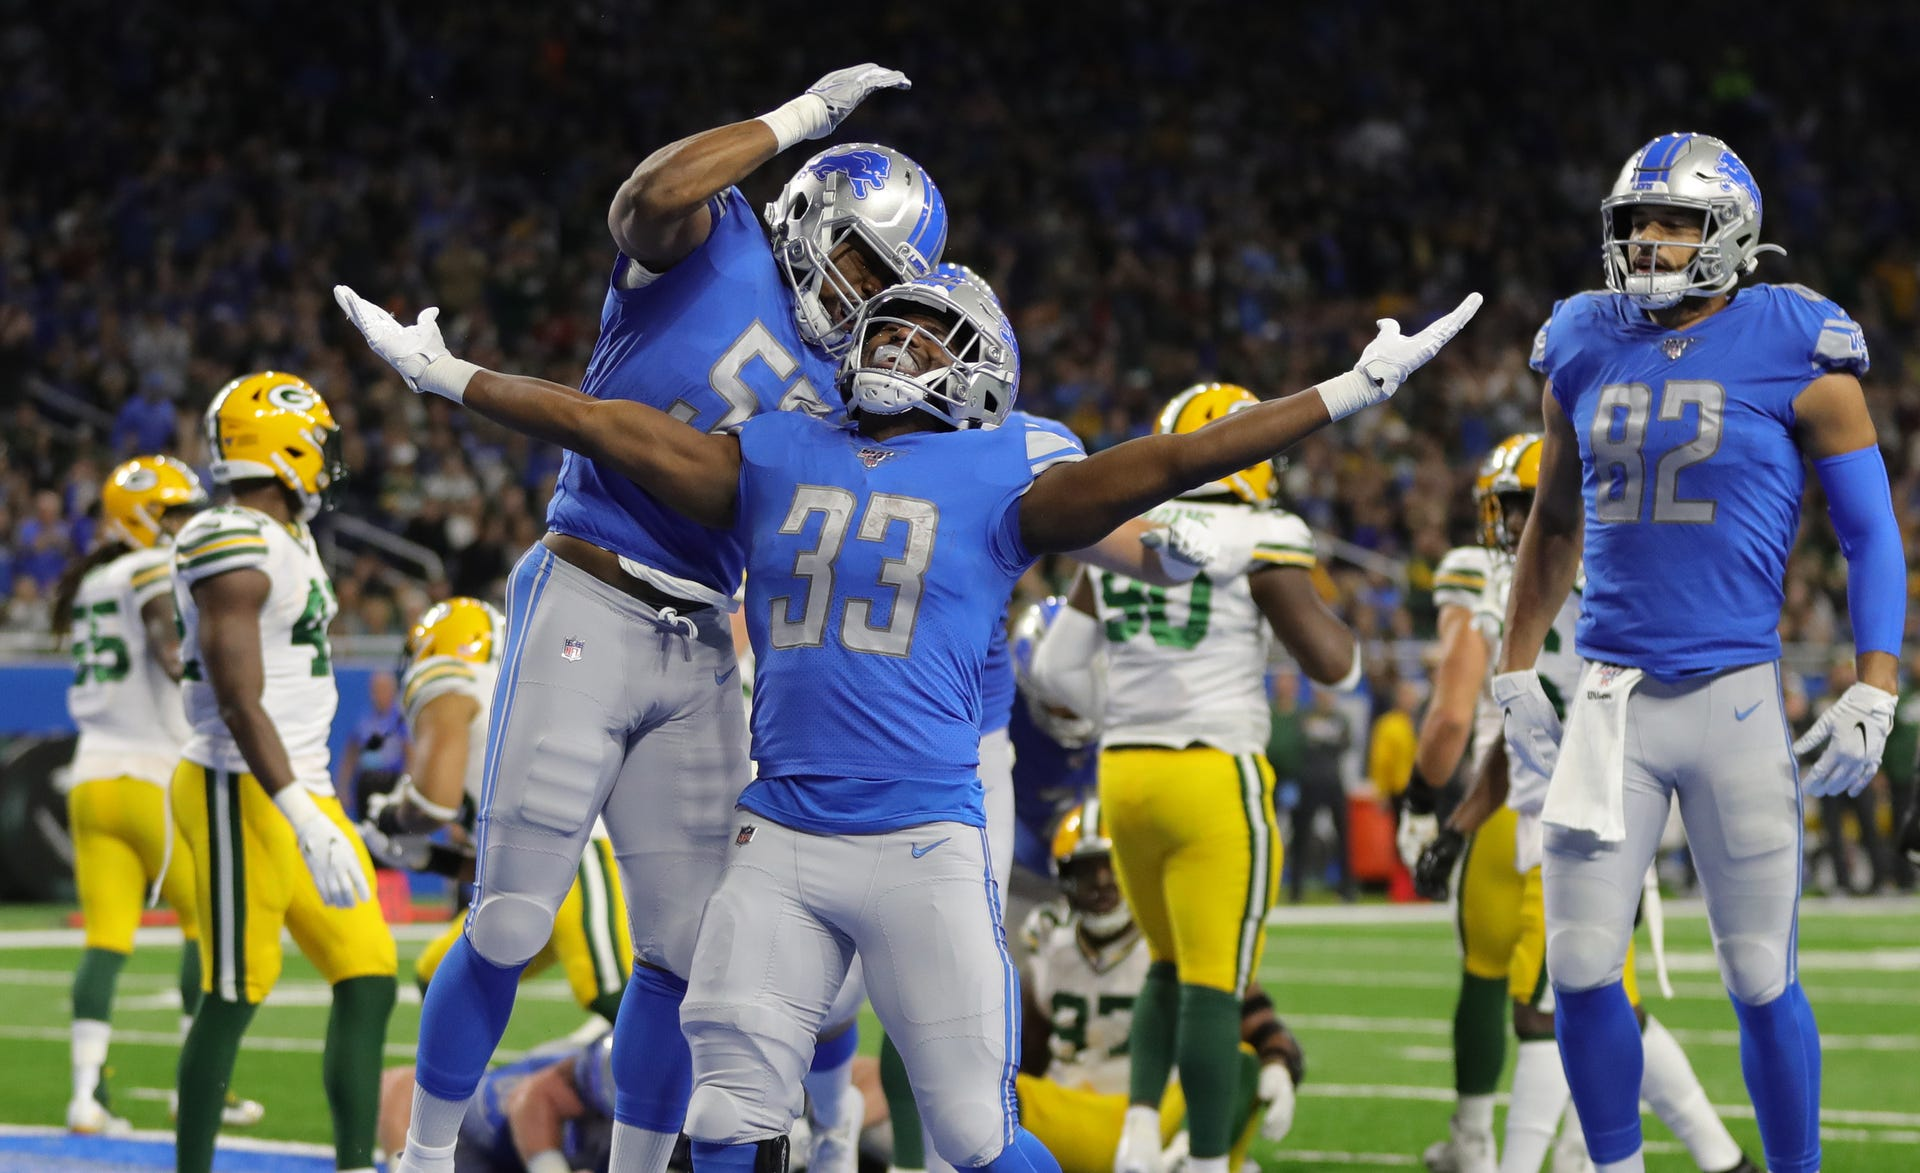 Detroit Lions running back Kerryon Johnson celebrates his touchdown against the Green Bay Packers during the first half Sunday, Dec. 29, 2019 at Ford Field.